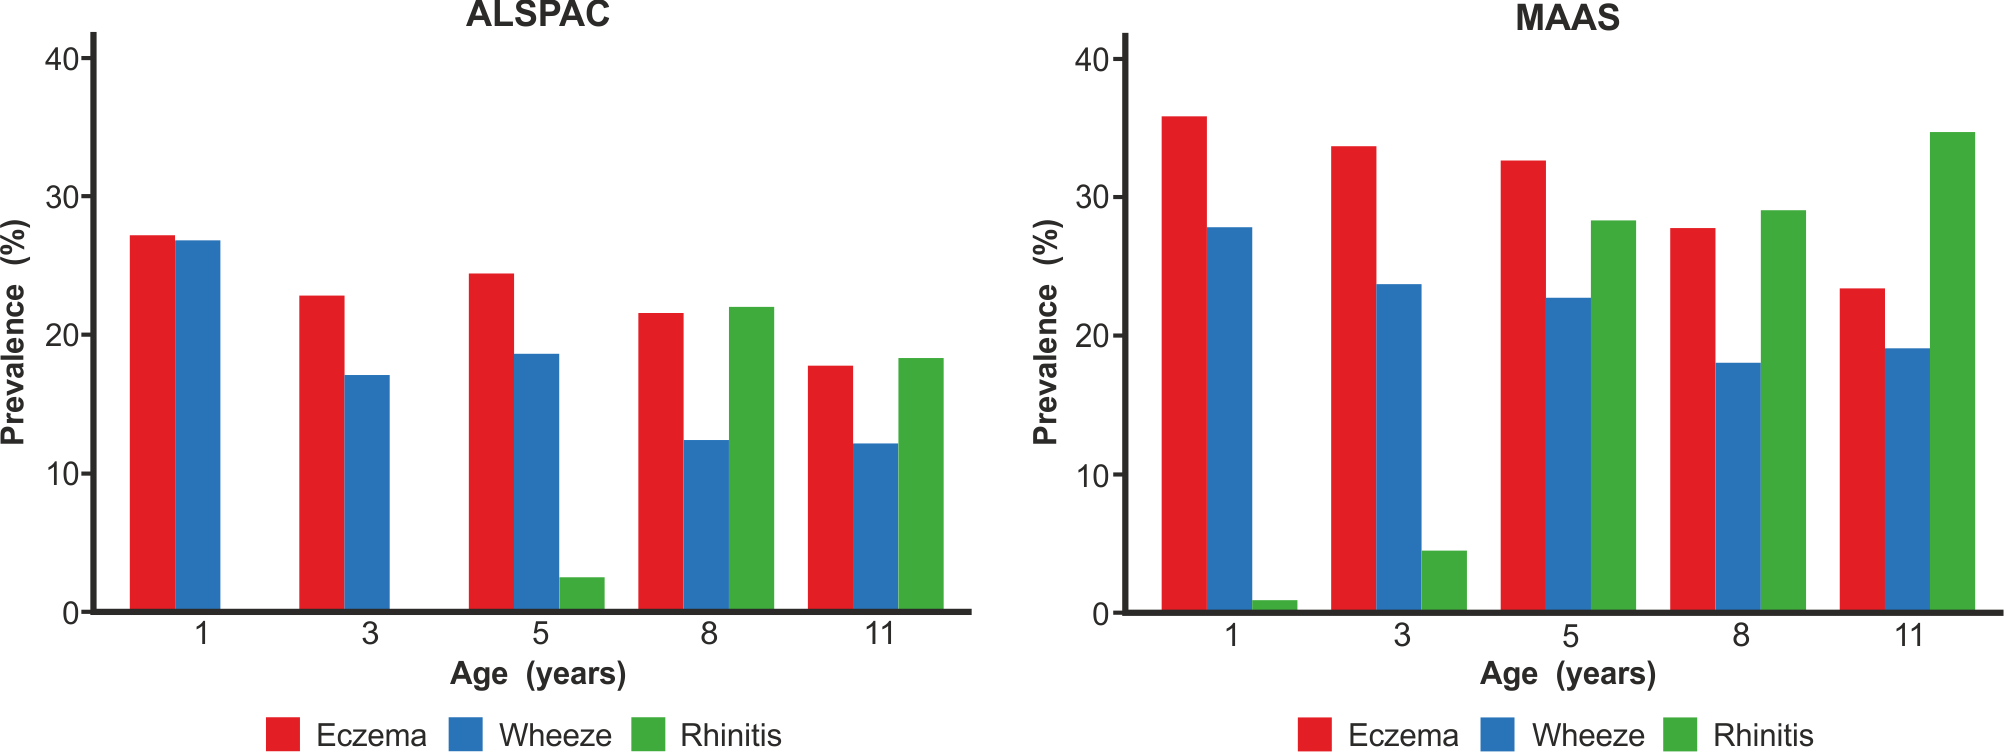 Prevalence of wheeze, eczema, and rhinitis over cross-sectional time points in the ALSPAC and MAAS cohorts.